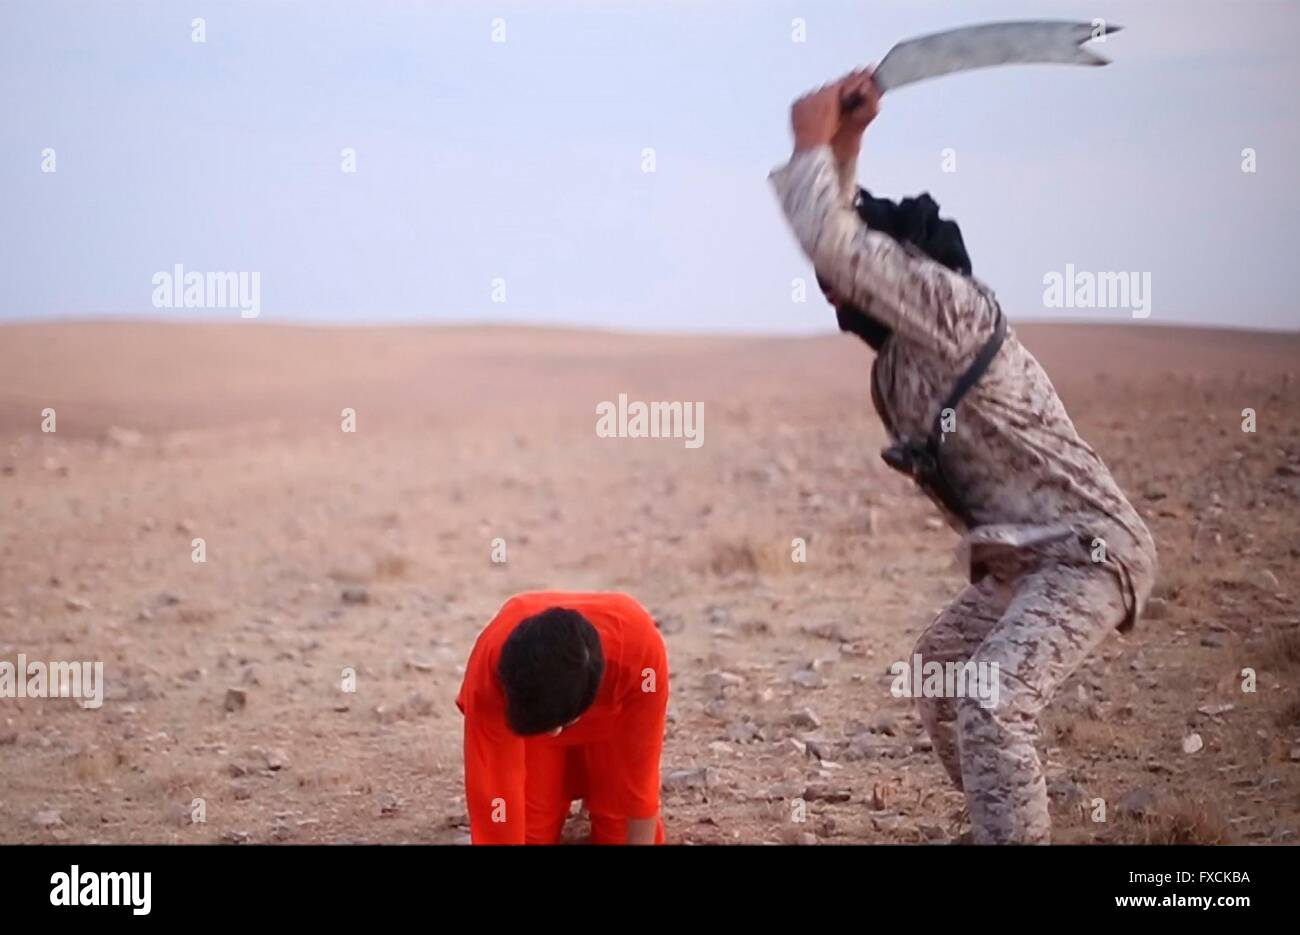 Islamic State fighter beheads an alleged spy in a propaganda video capture released by the Islamic State of Iraq - Stock Image